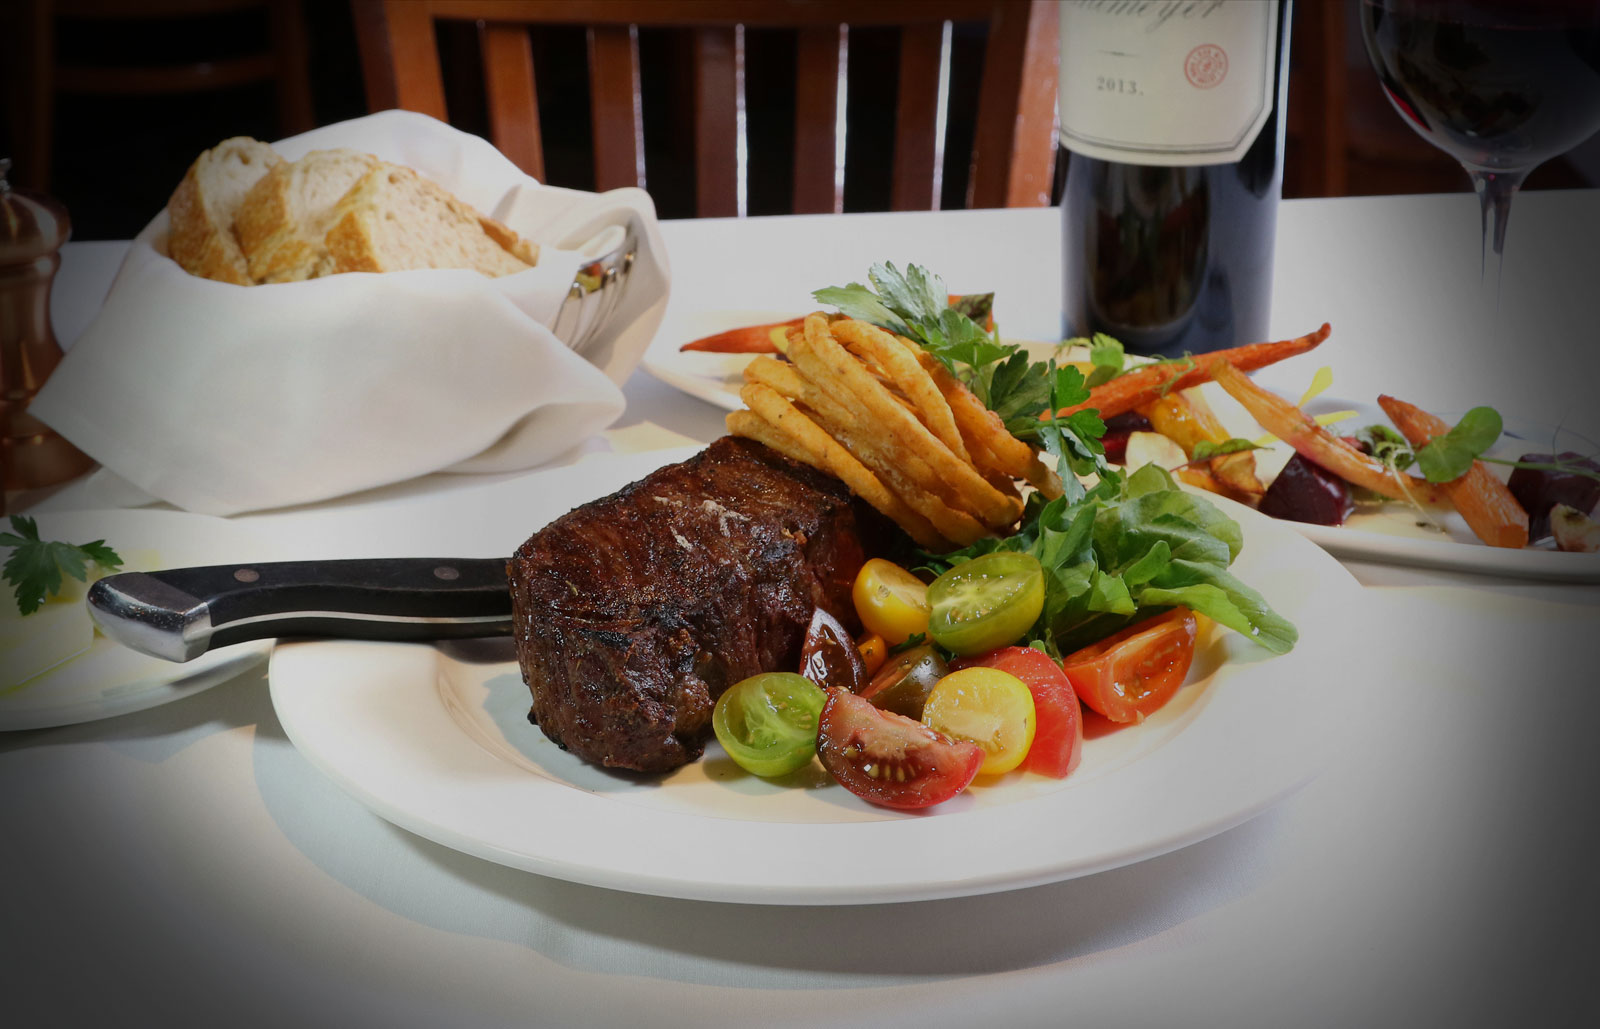 Restaurants Bonita Springs Florida Steak House Seafood